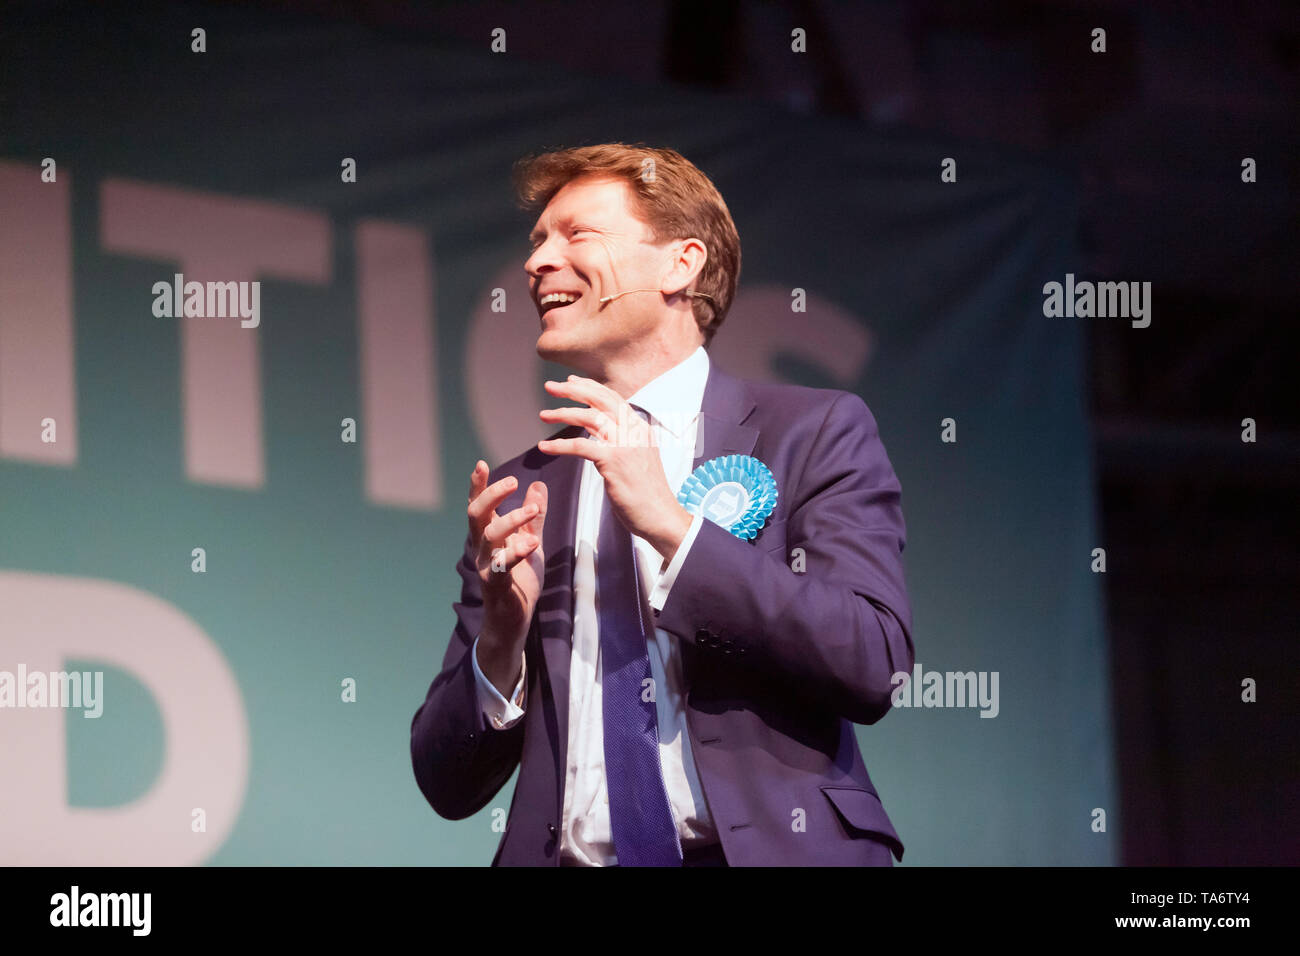 Richard Tice, Chairman of The Brexit Party, introducing the speakers, during a Political Rally held at Olympia London Stock Photo